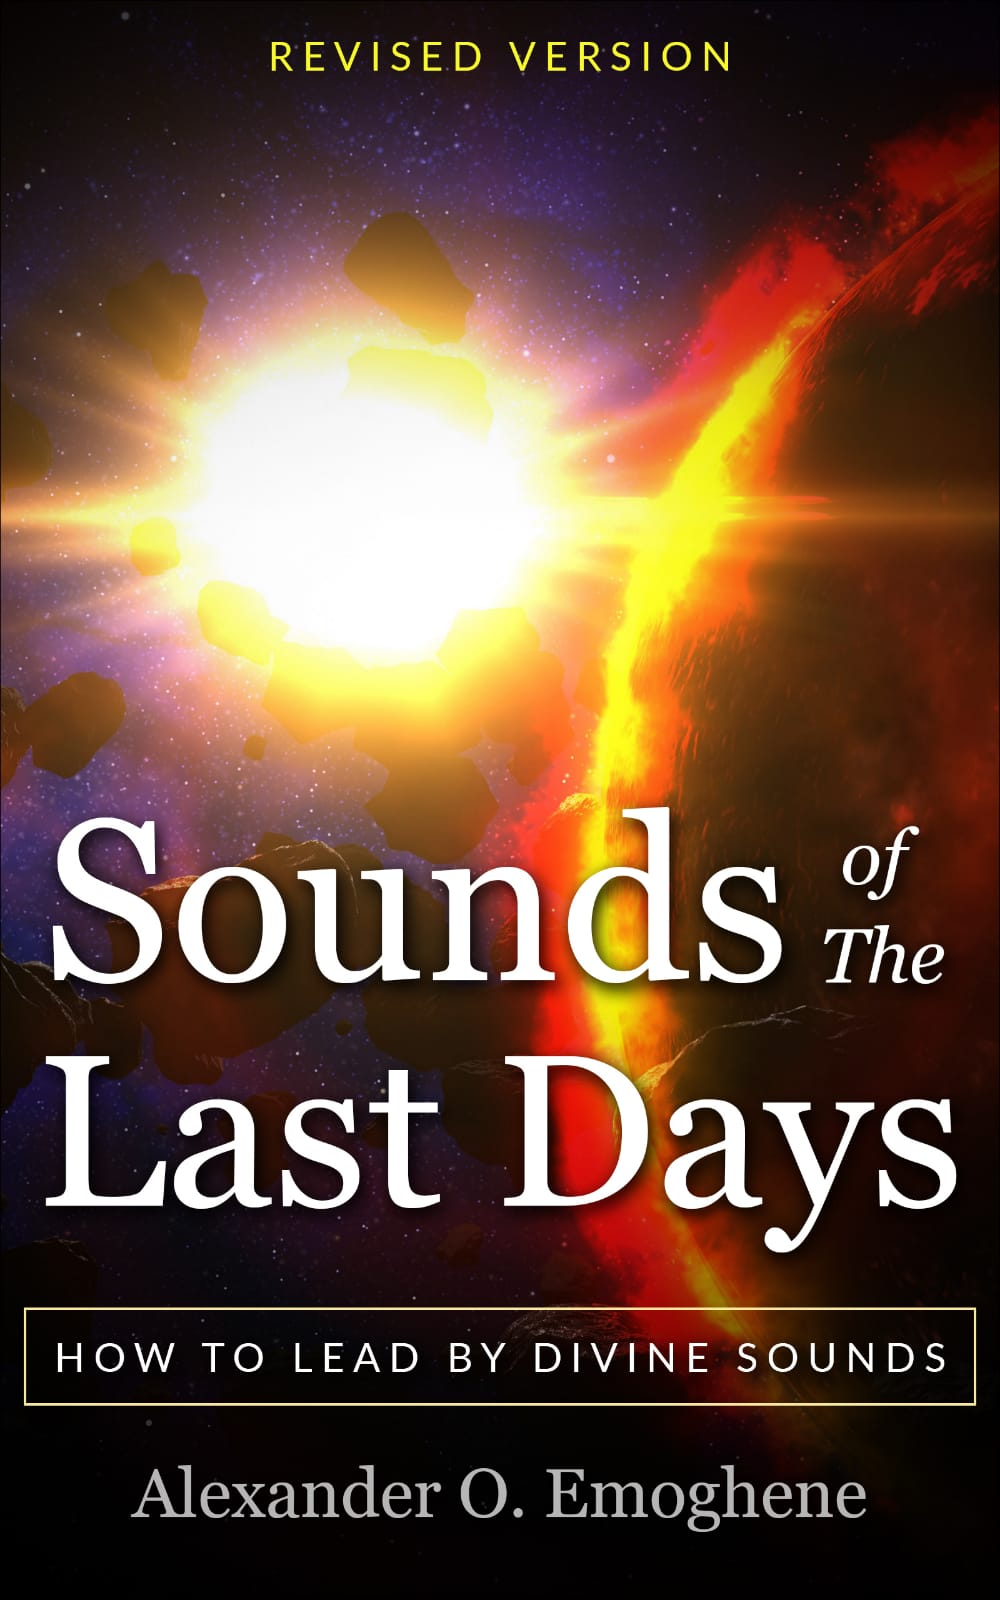 SOUND OF THE LAST DAYS (revised version)